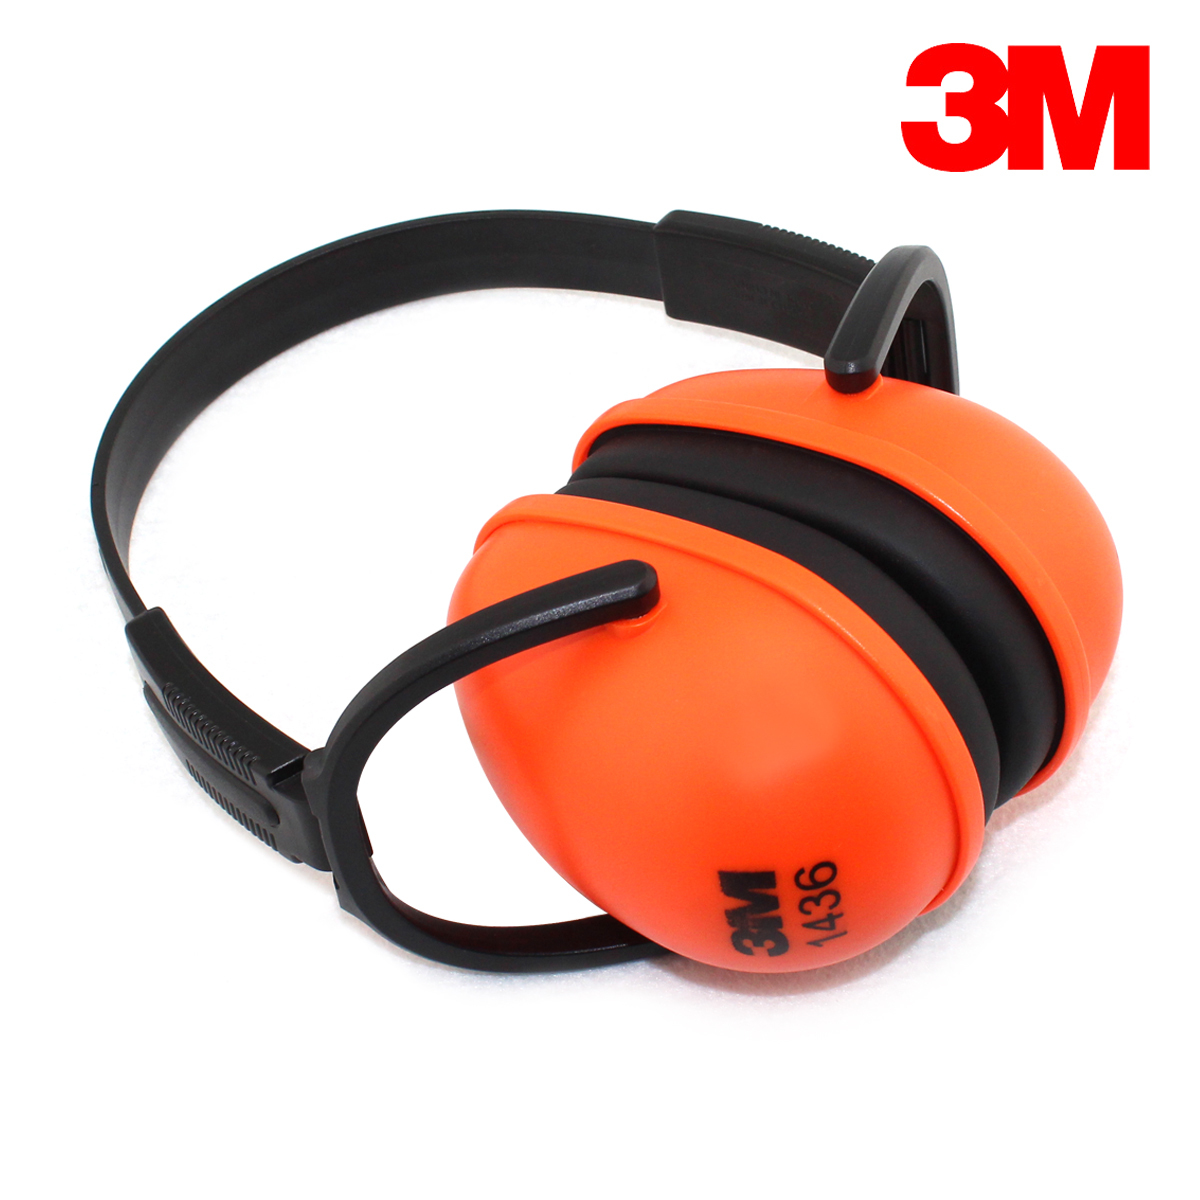 Ear muffs for noise protection policy